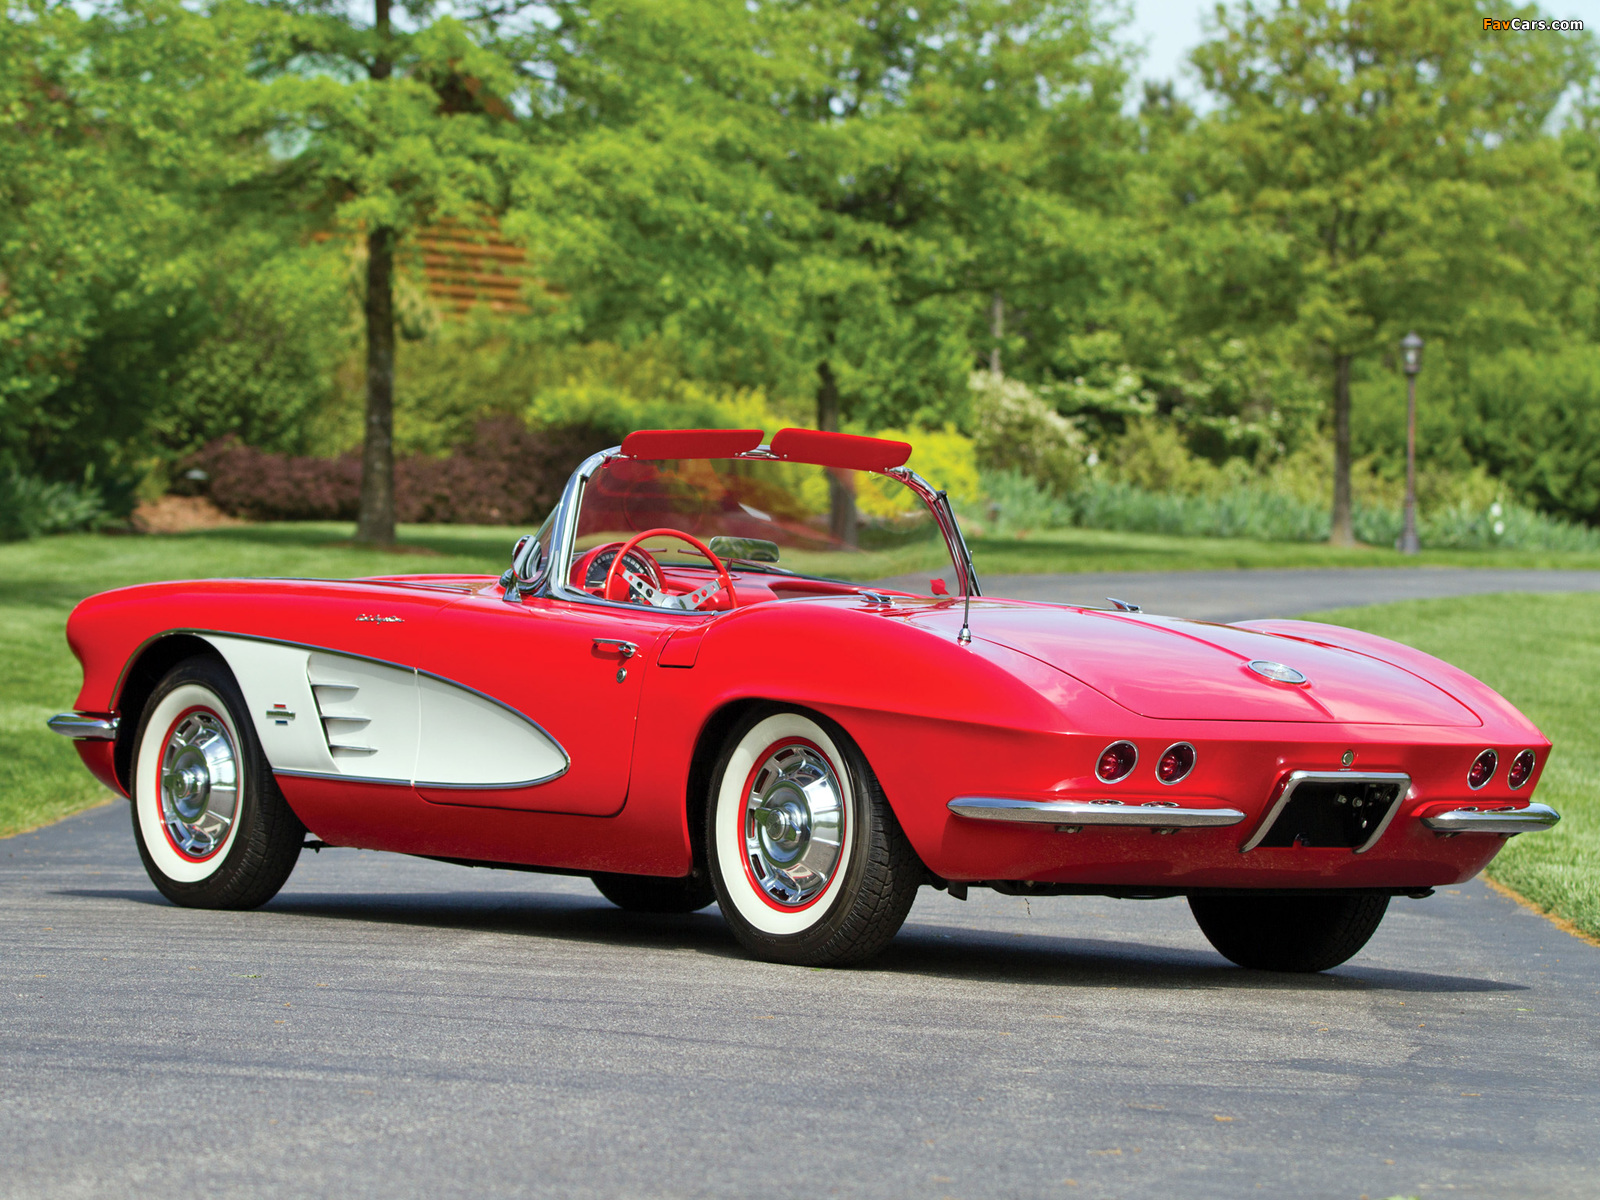 Corvette C1 Fuel Injection 1961 images (1600 x 1200)